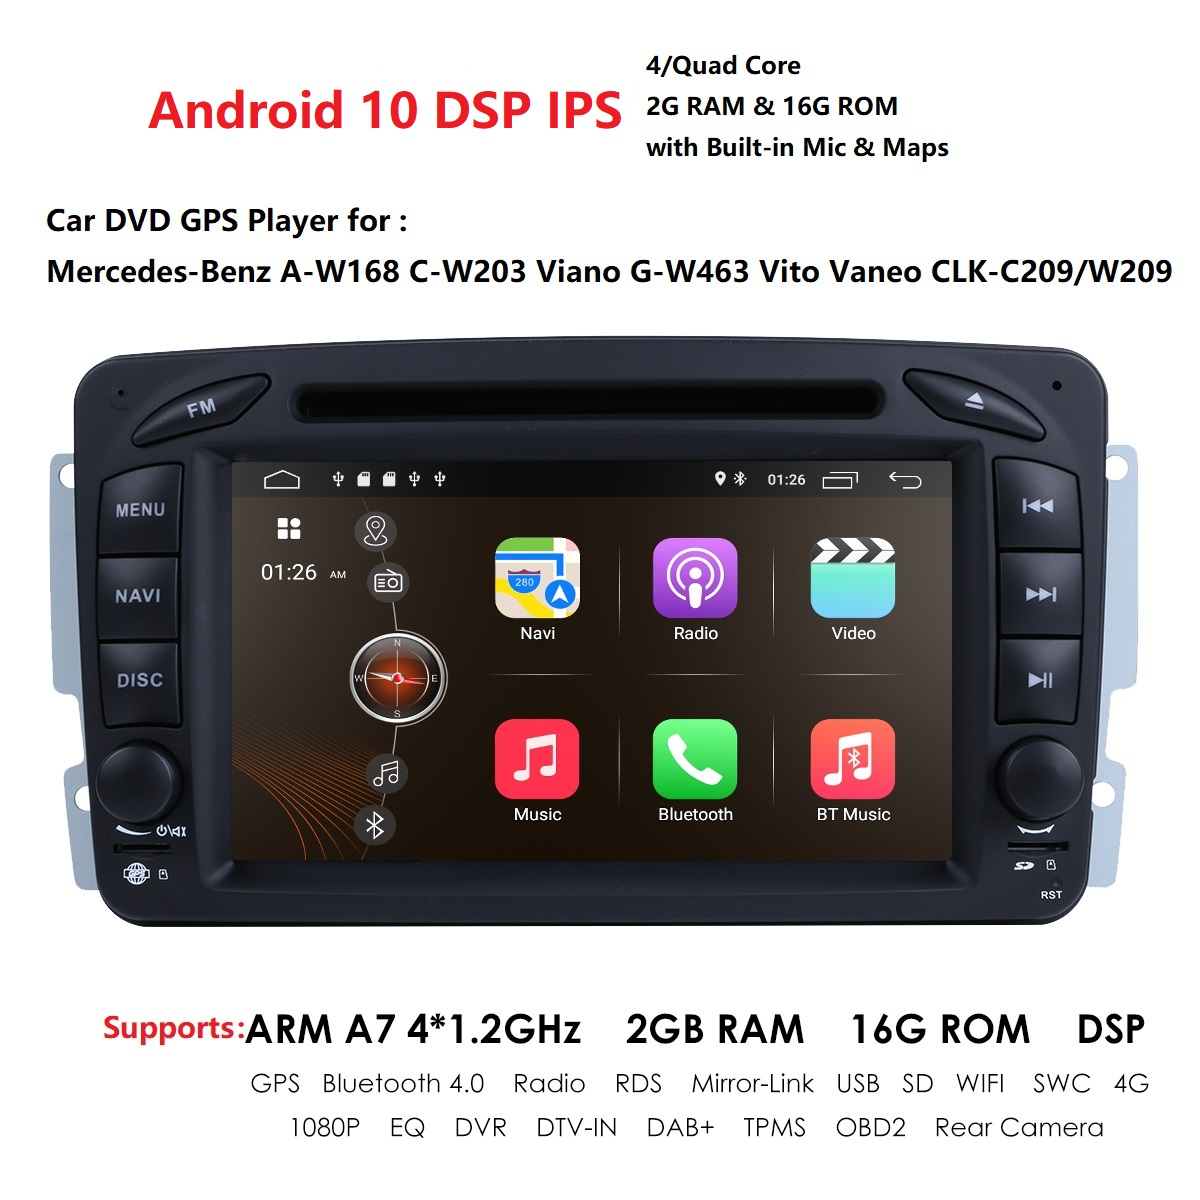 7 Inch Android 10 2 Din 4 Core IPS <font><b>Car</b></font> <font><b>radio</b></font> DVD player For <font><b>Mercedes</b></font> Benz CLK W209 W203 <font><b>W208</b></font> W463 Mirror Link DAB+ DSP 2GB 16GB image